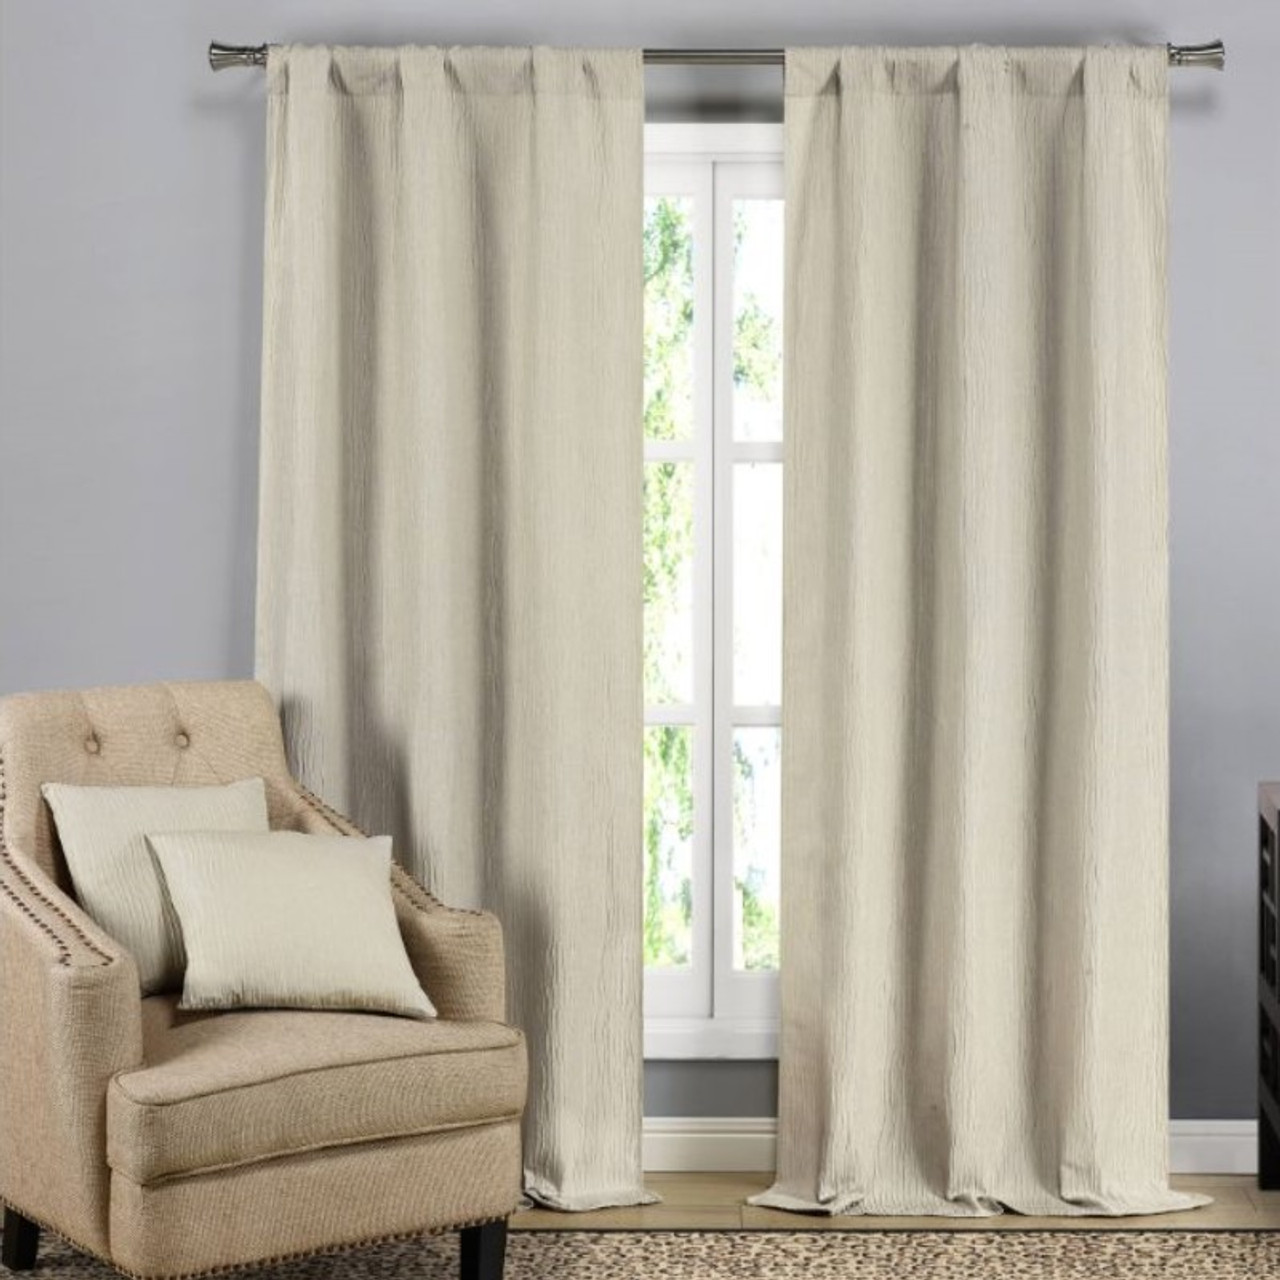 Solid Blackout Textured Curtain Panels with Decorative Pillow Covers - 2 Pack